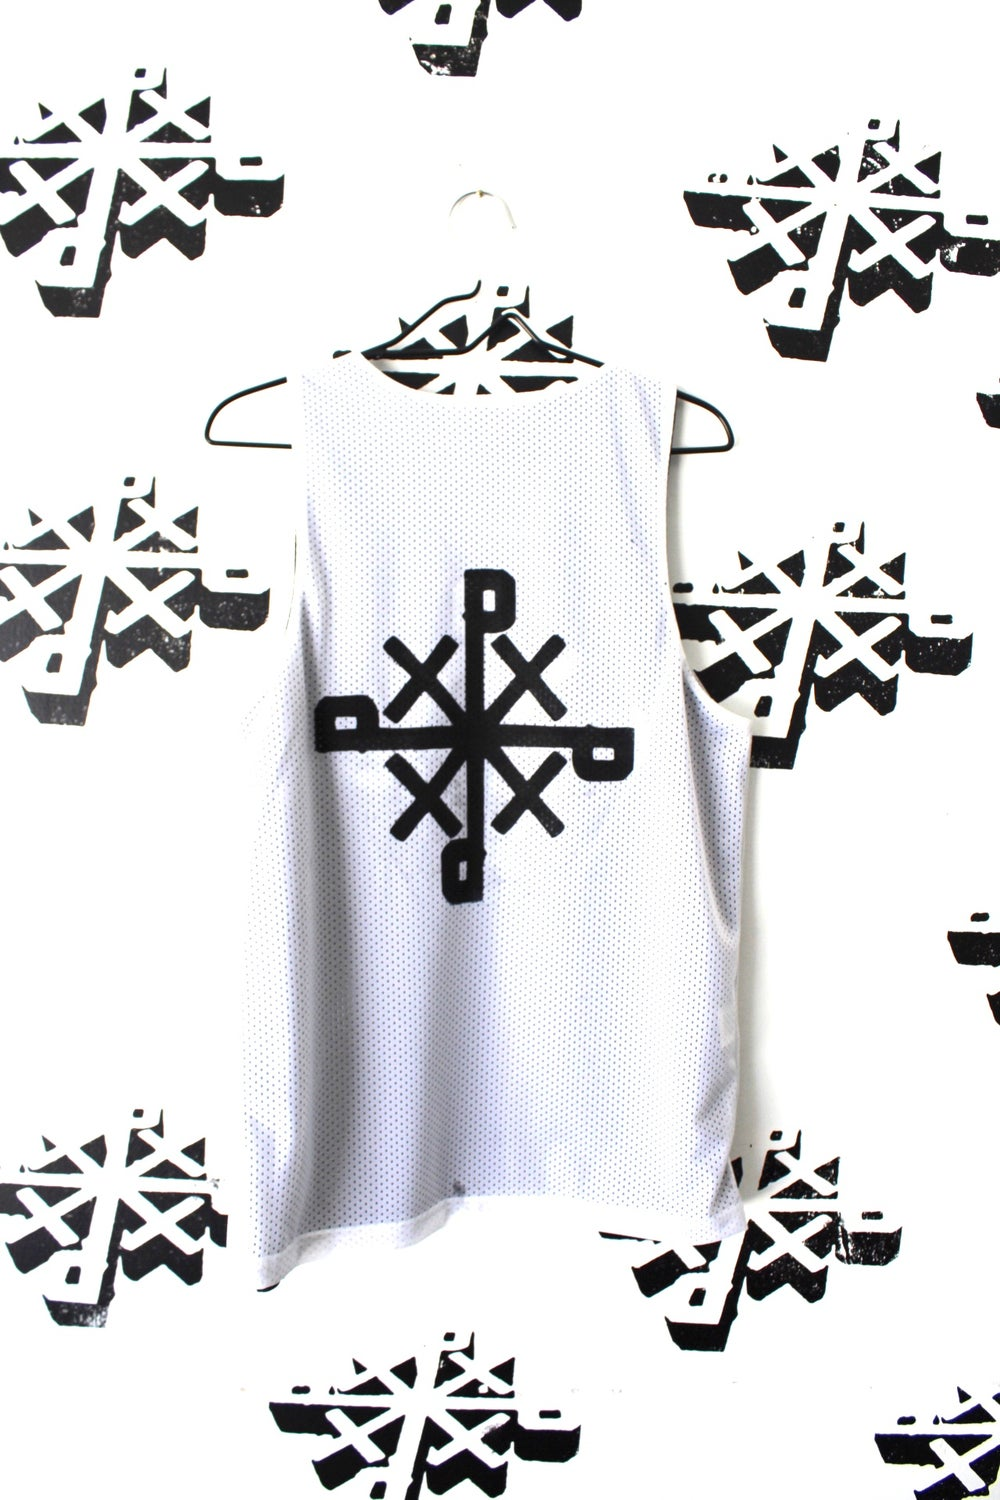 bds some shooters in this house  jerseys in Blk/wht